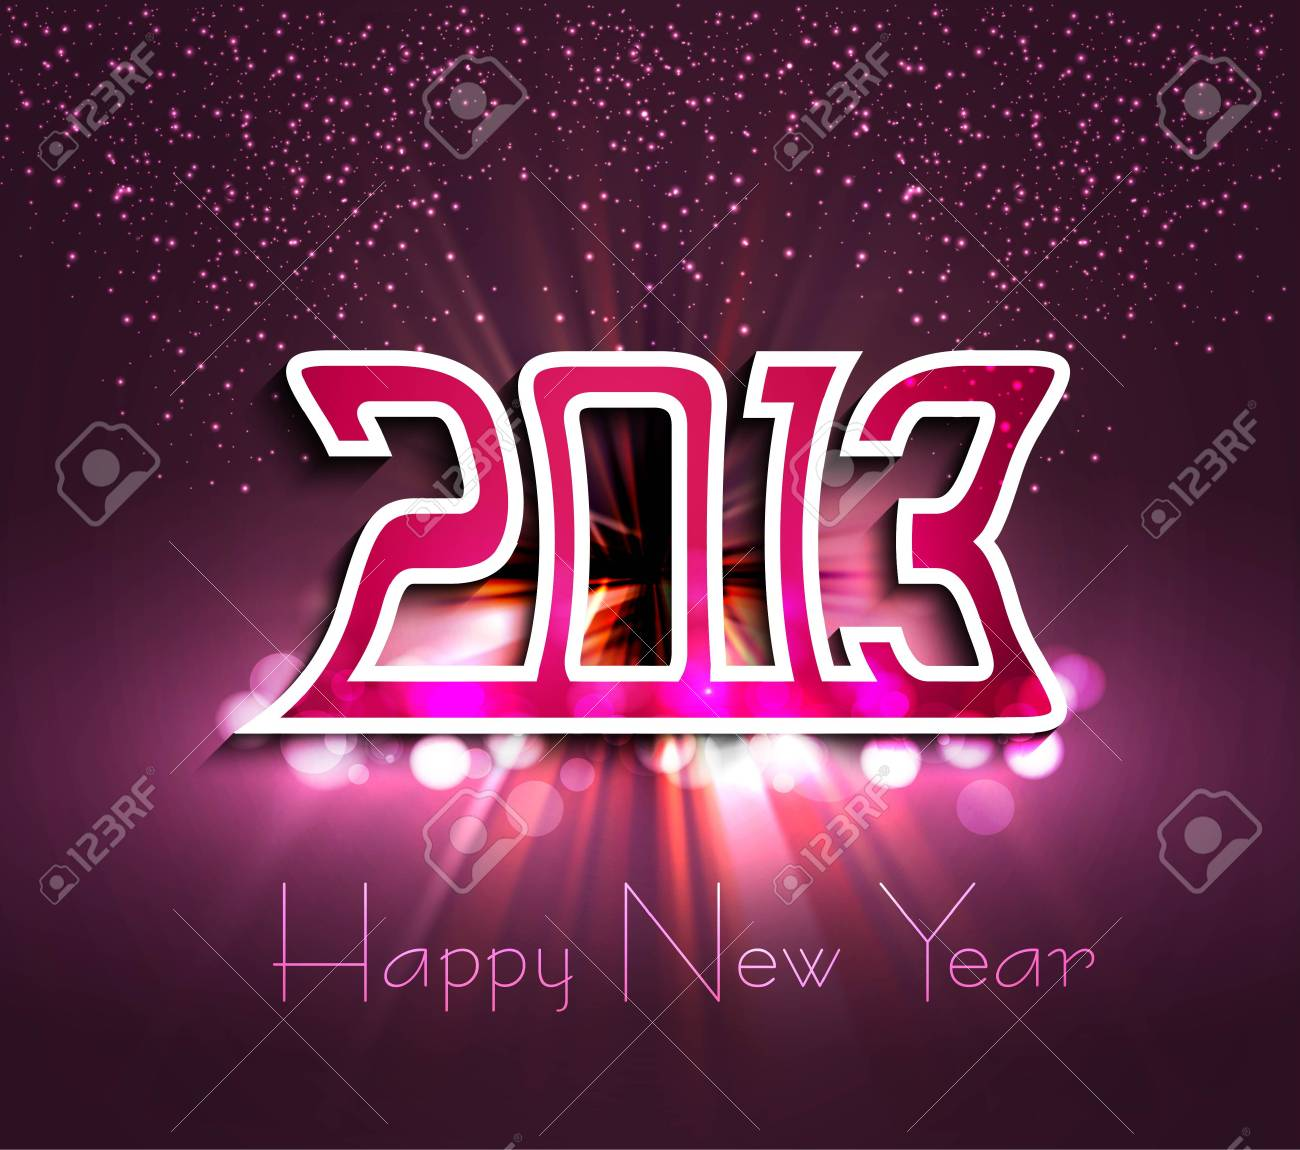 New 2013 year bright colorful greeting card vector Stock Vector - 17945717